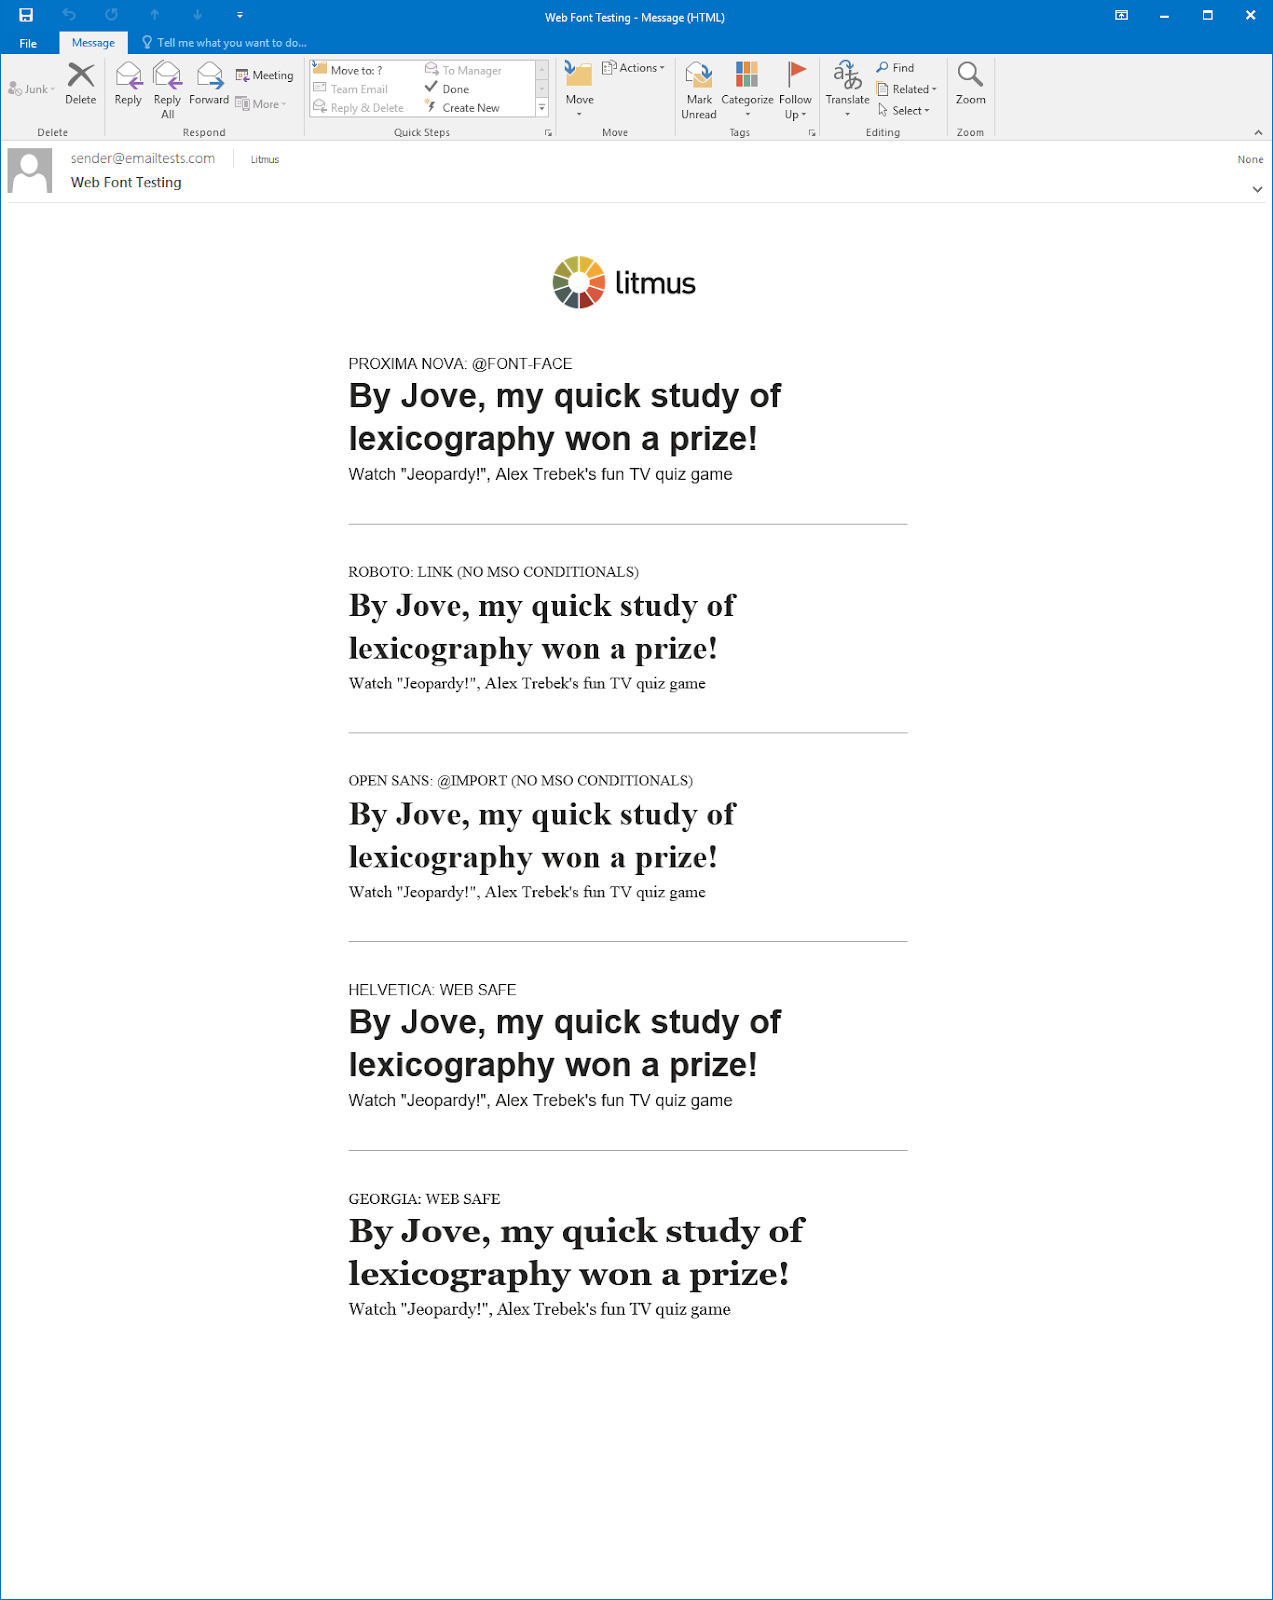 testing web fonts in email for older versions of outlook without mso conditionals